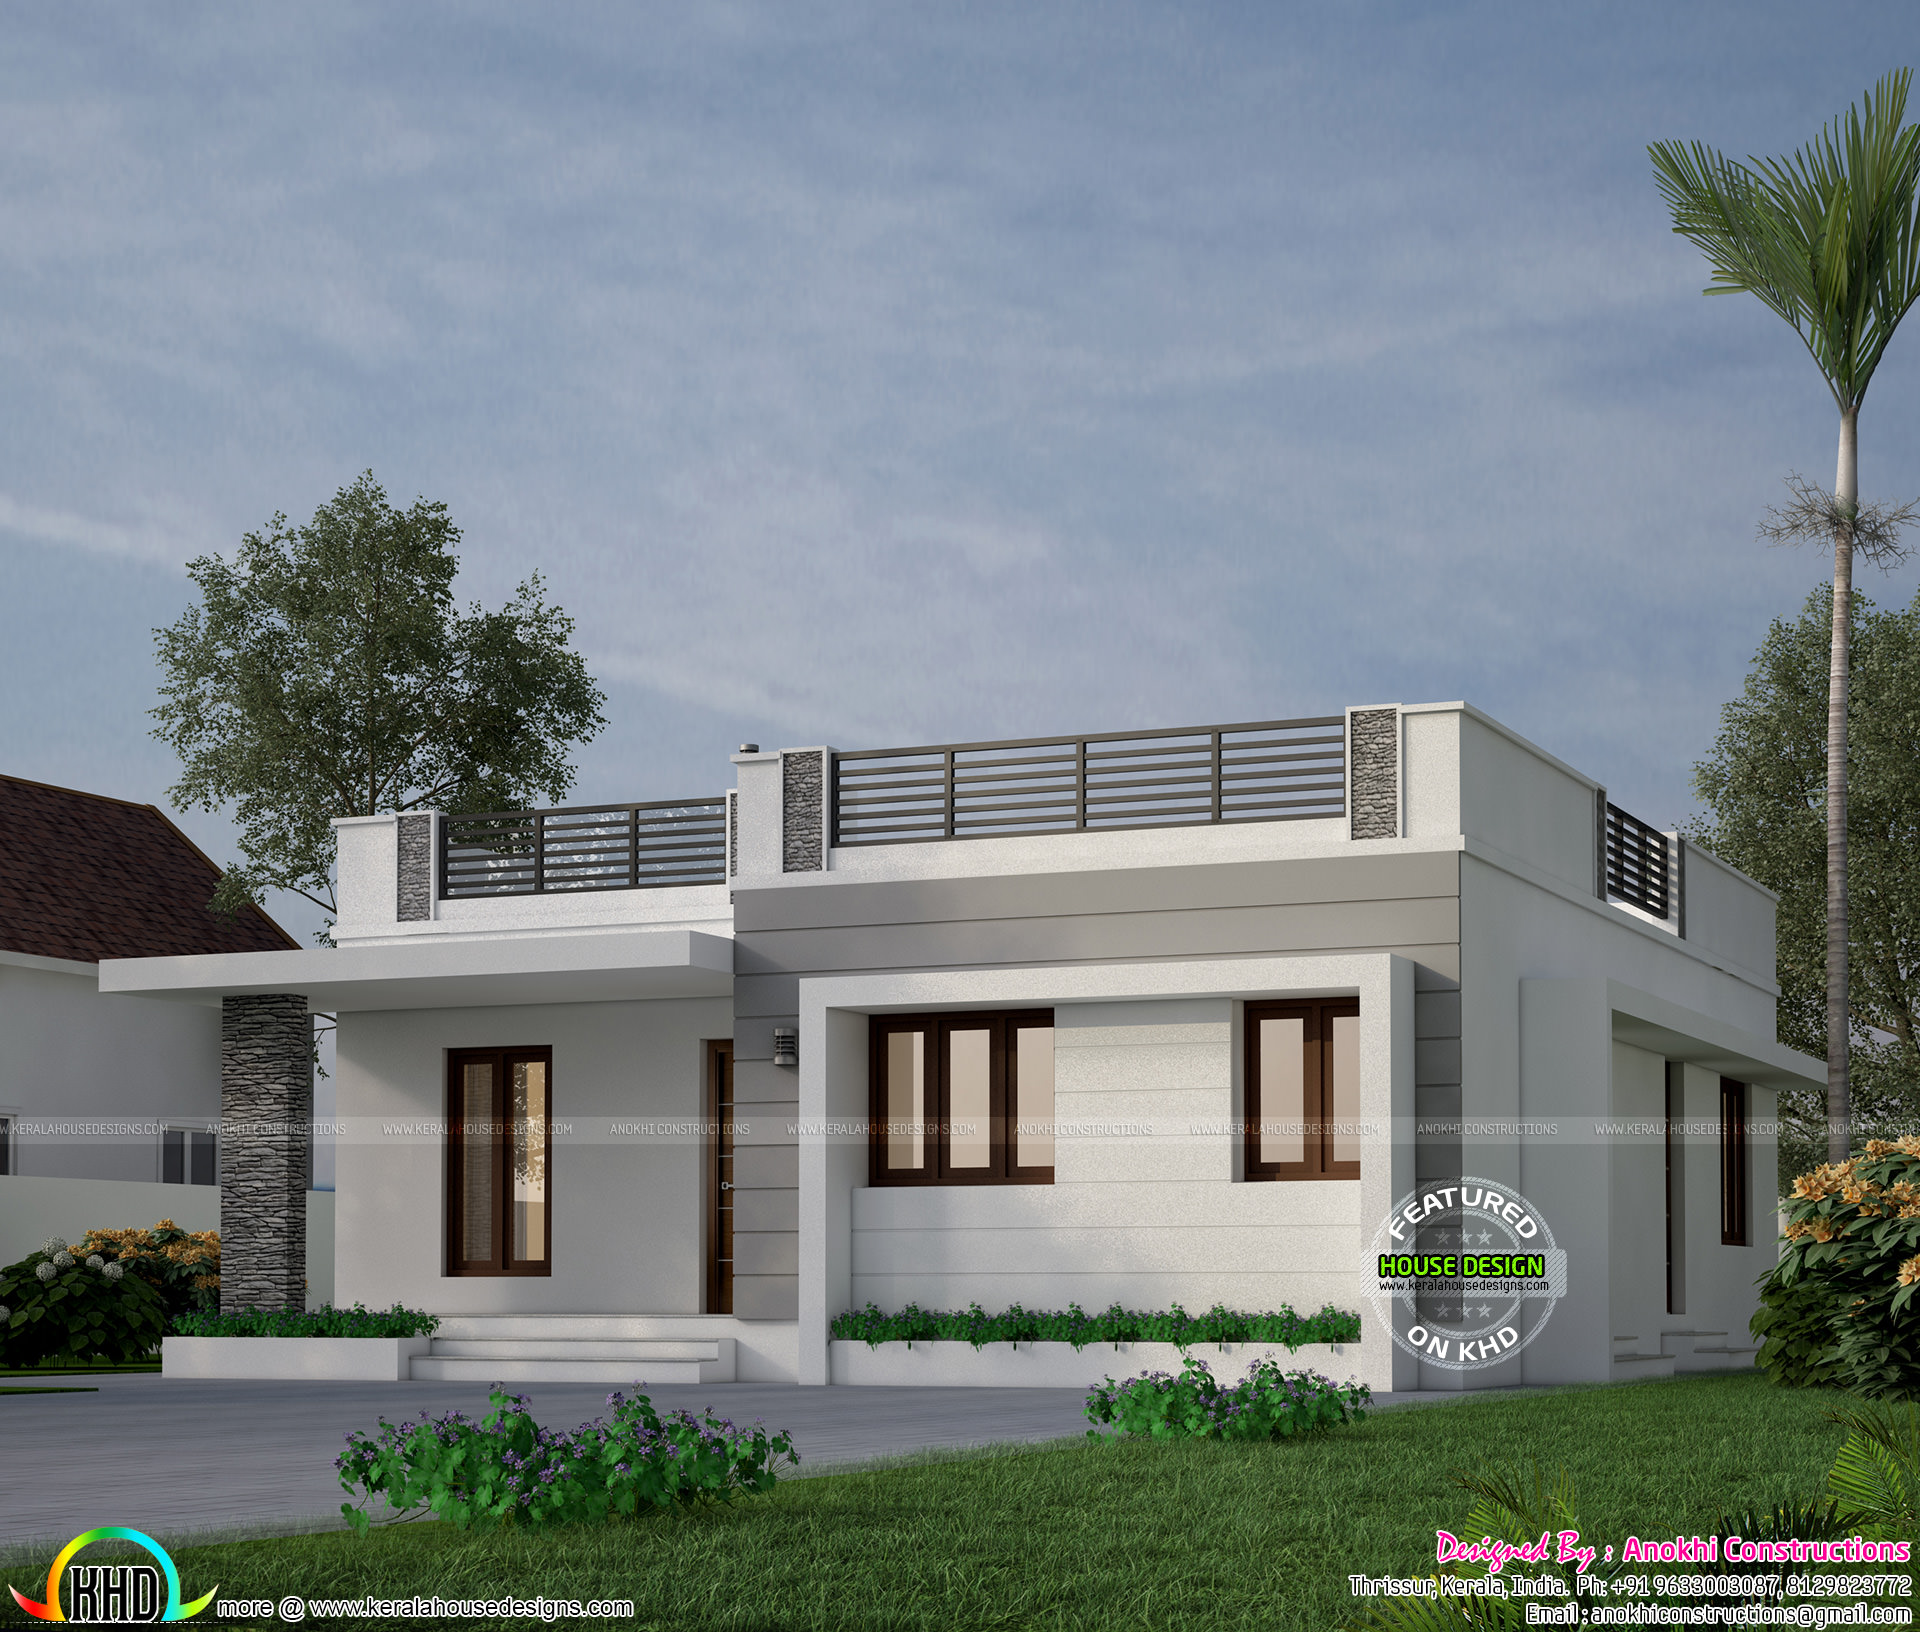 18 lakhs budget estimated house in kerala kerala home for Singlex house design